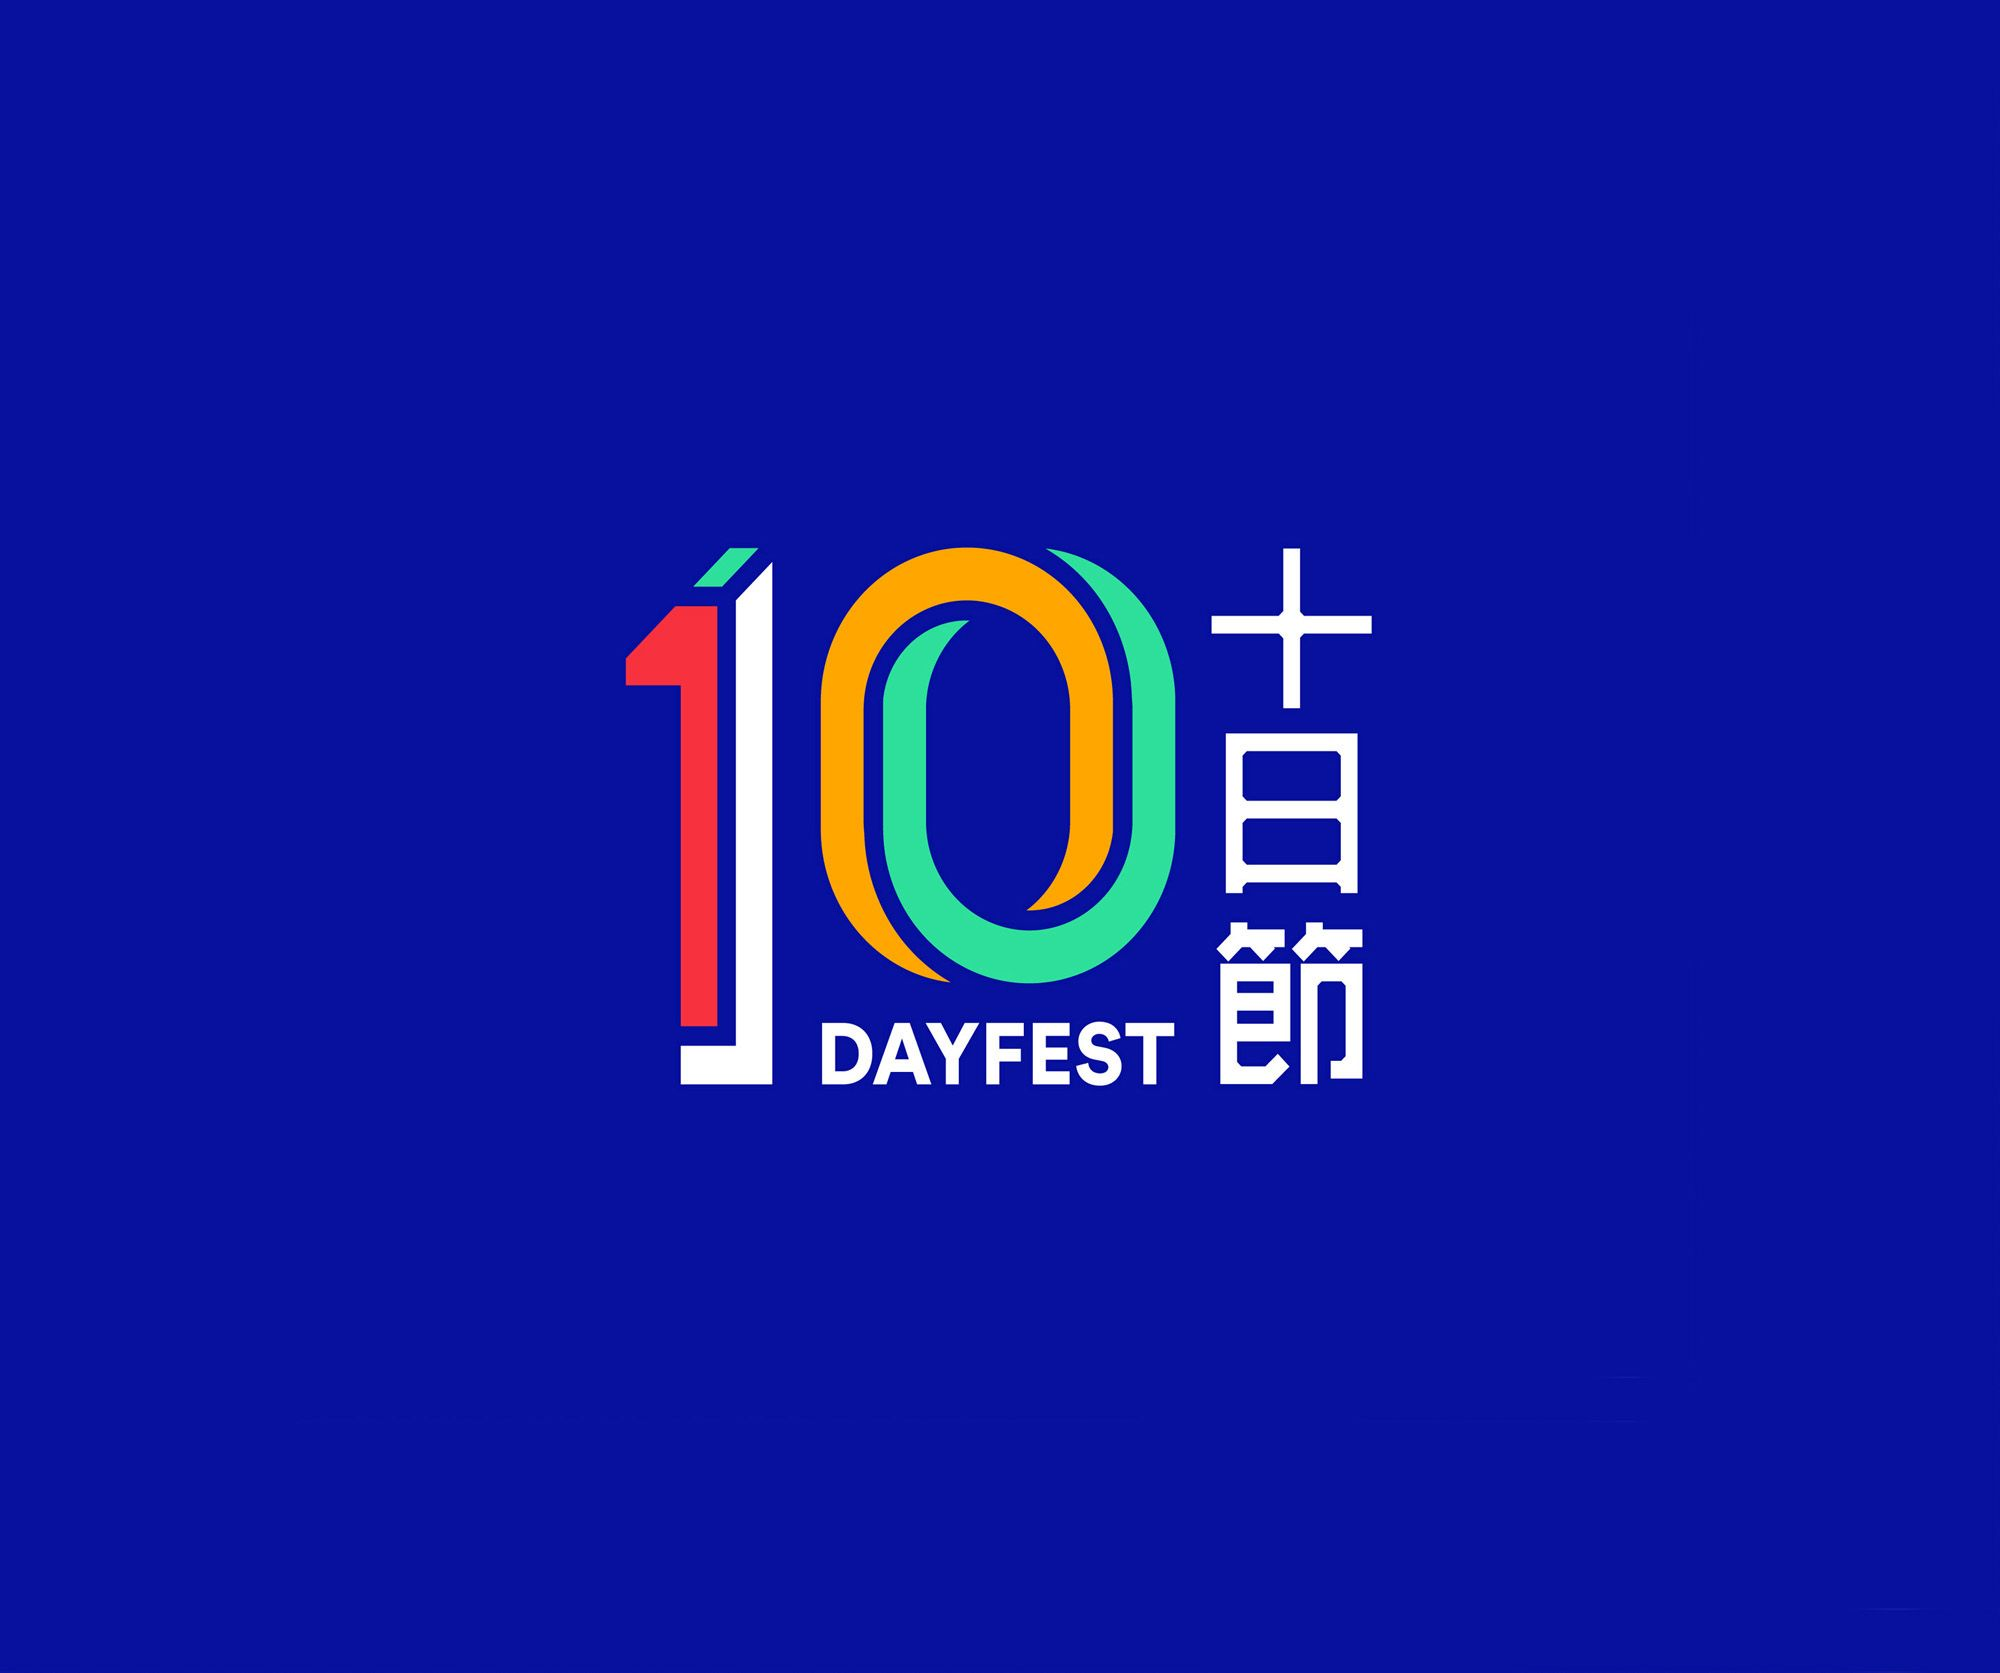 Social Innovation Festival 10dayfest Is An Annual Flagship Programme Organized By Jockey Club Design Institute For Soc Branding Imagenes De Marcas Tipografia